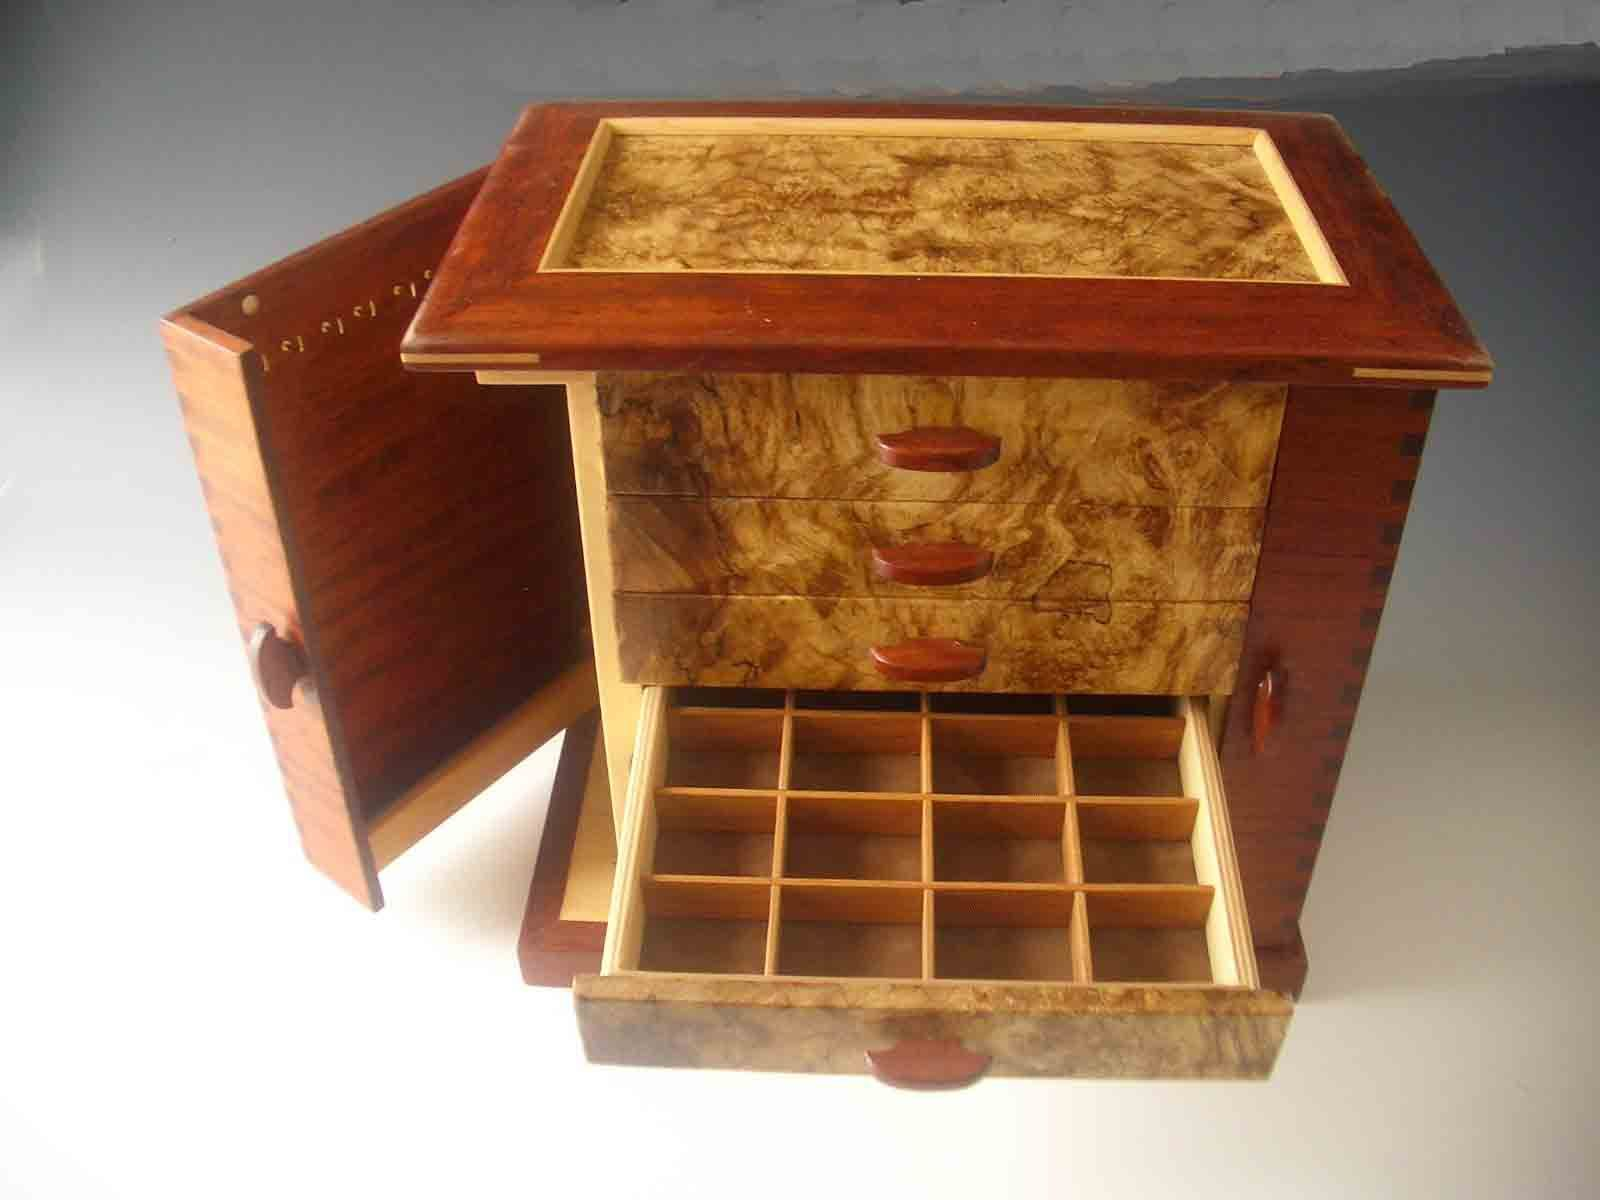 Handcrafted necklace holders jewelry box made of exotic wood with two doors that swing open to